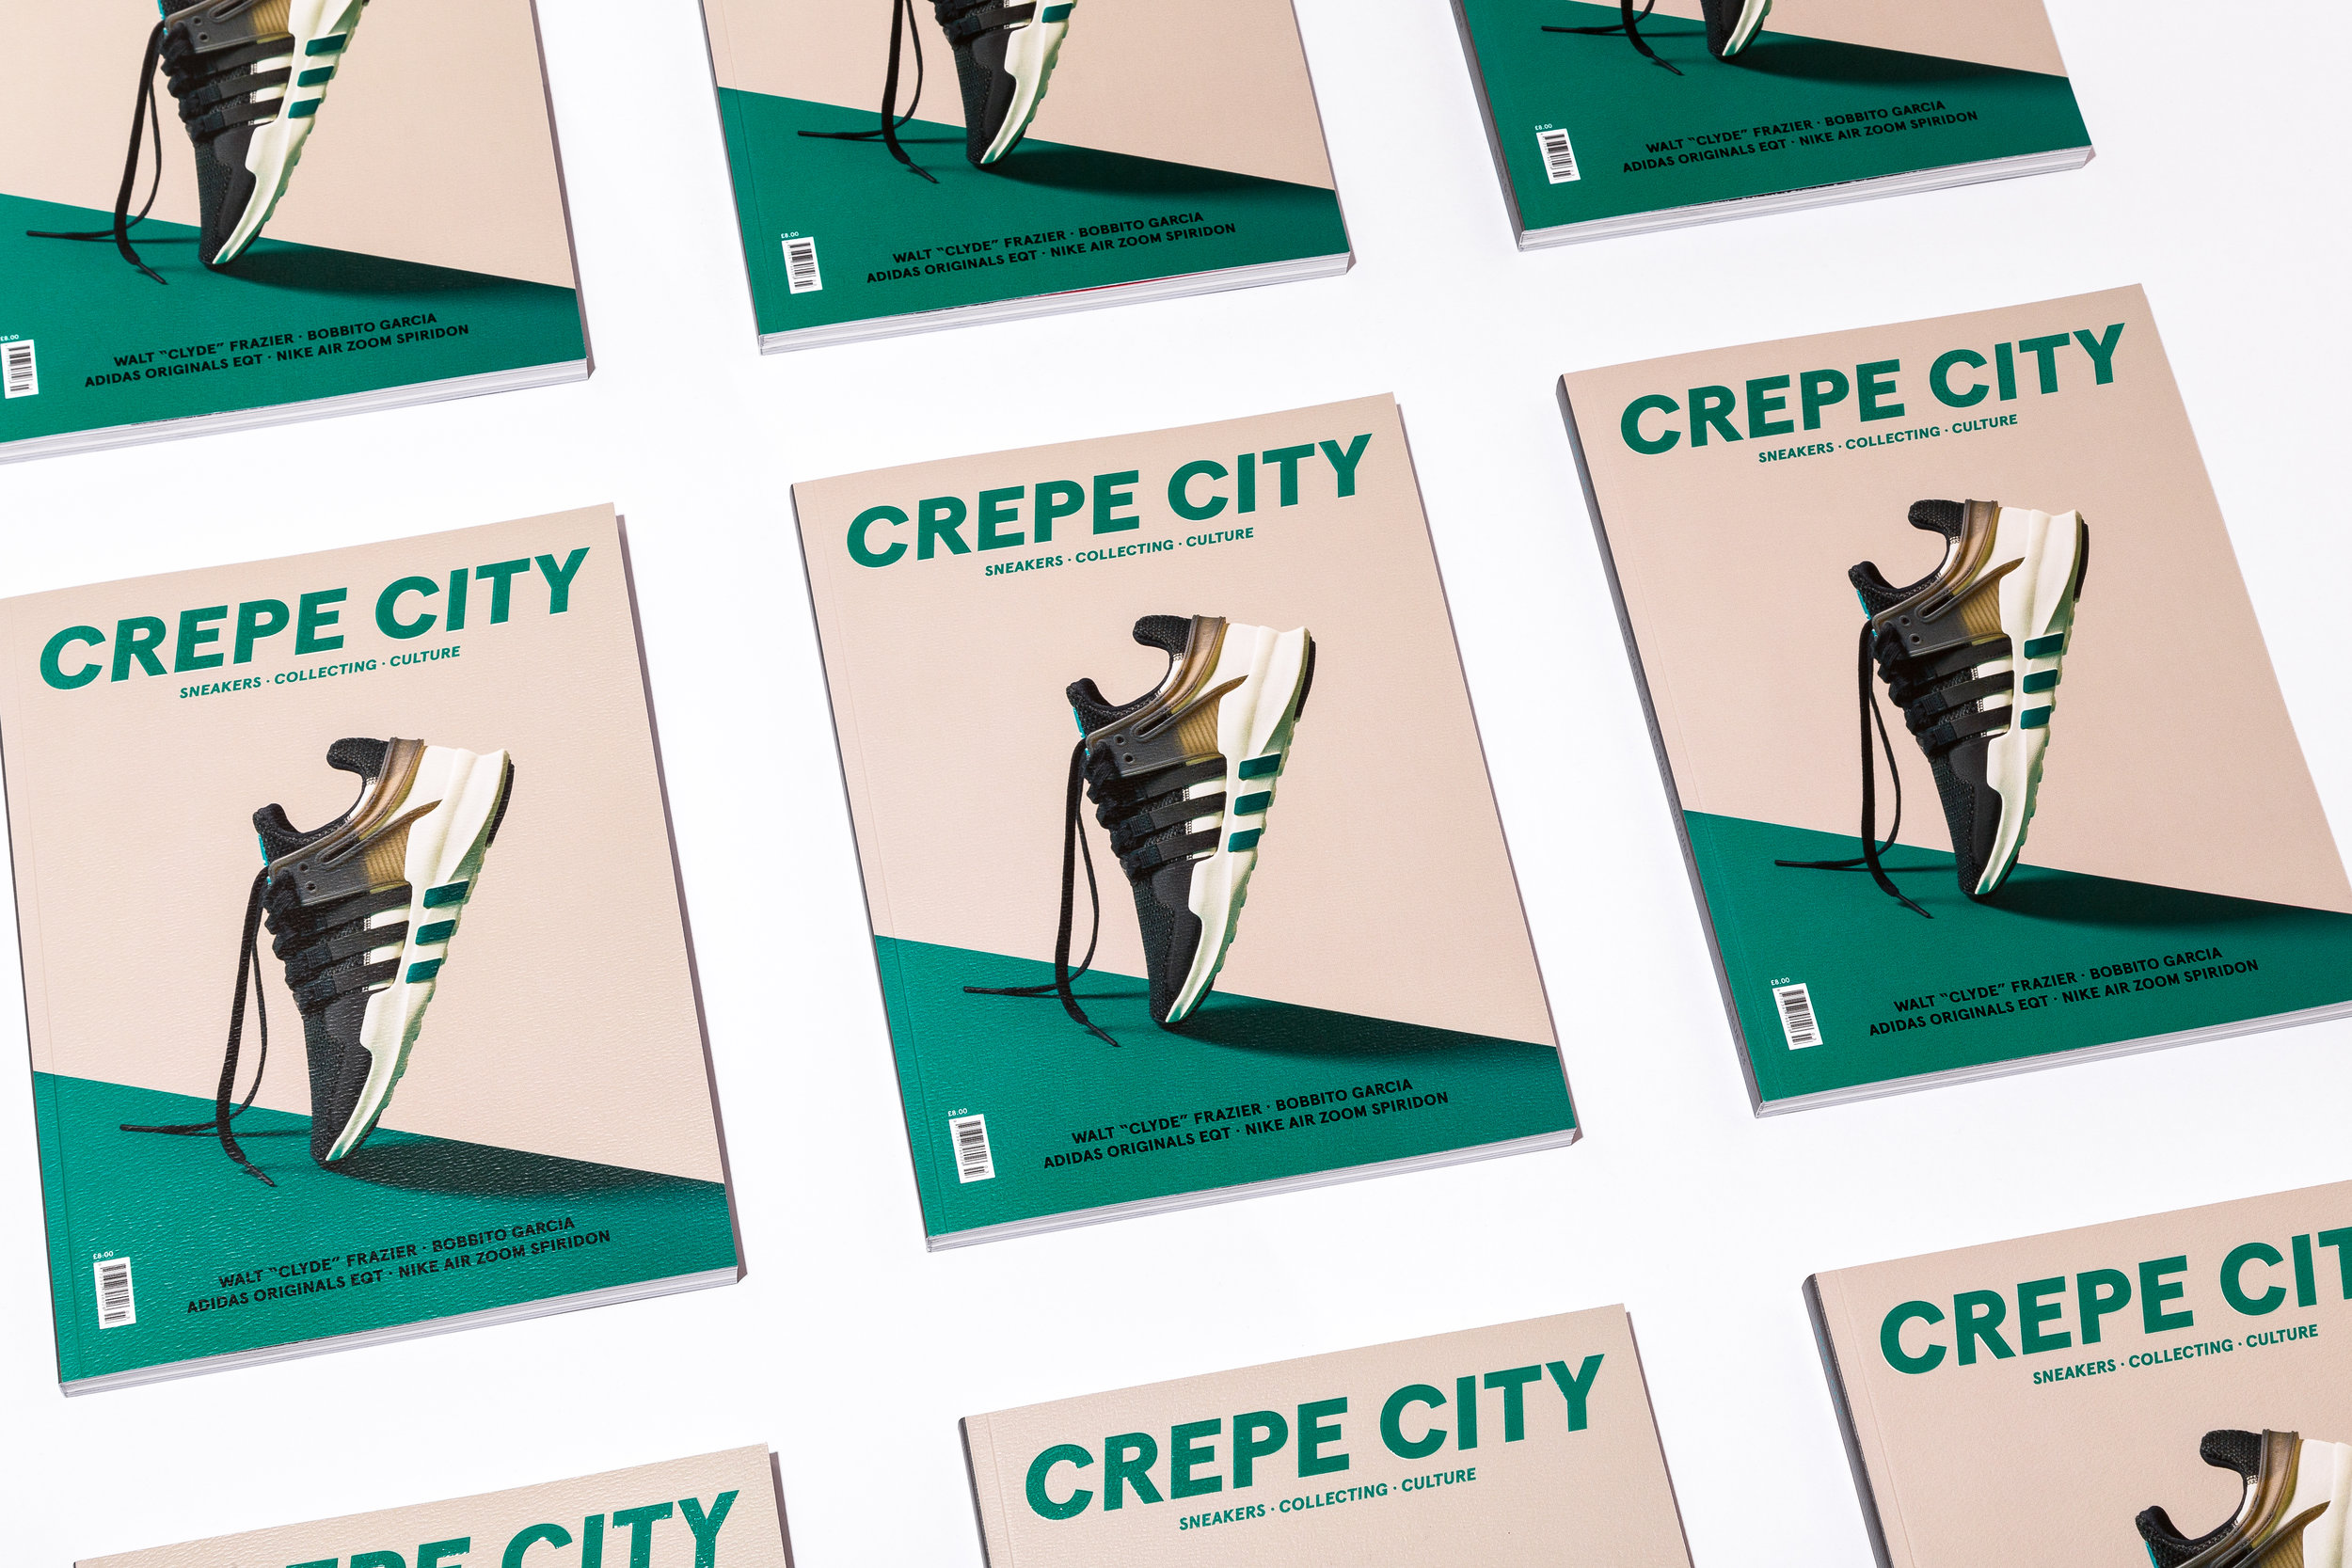 CREPE CITY issue 03 - 01.jpg